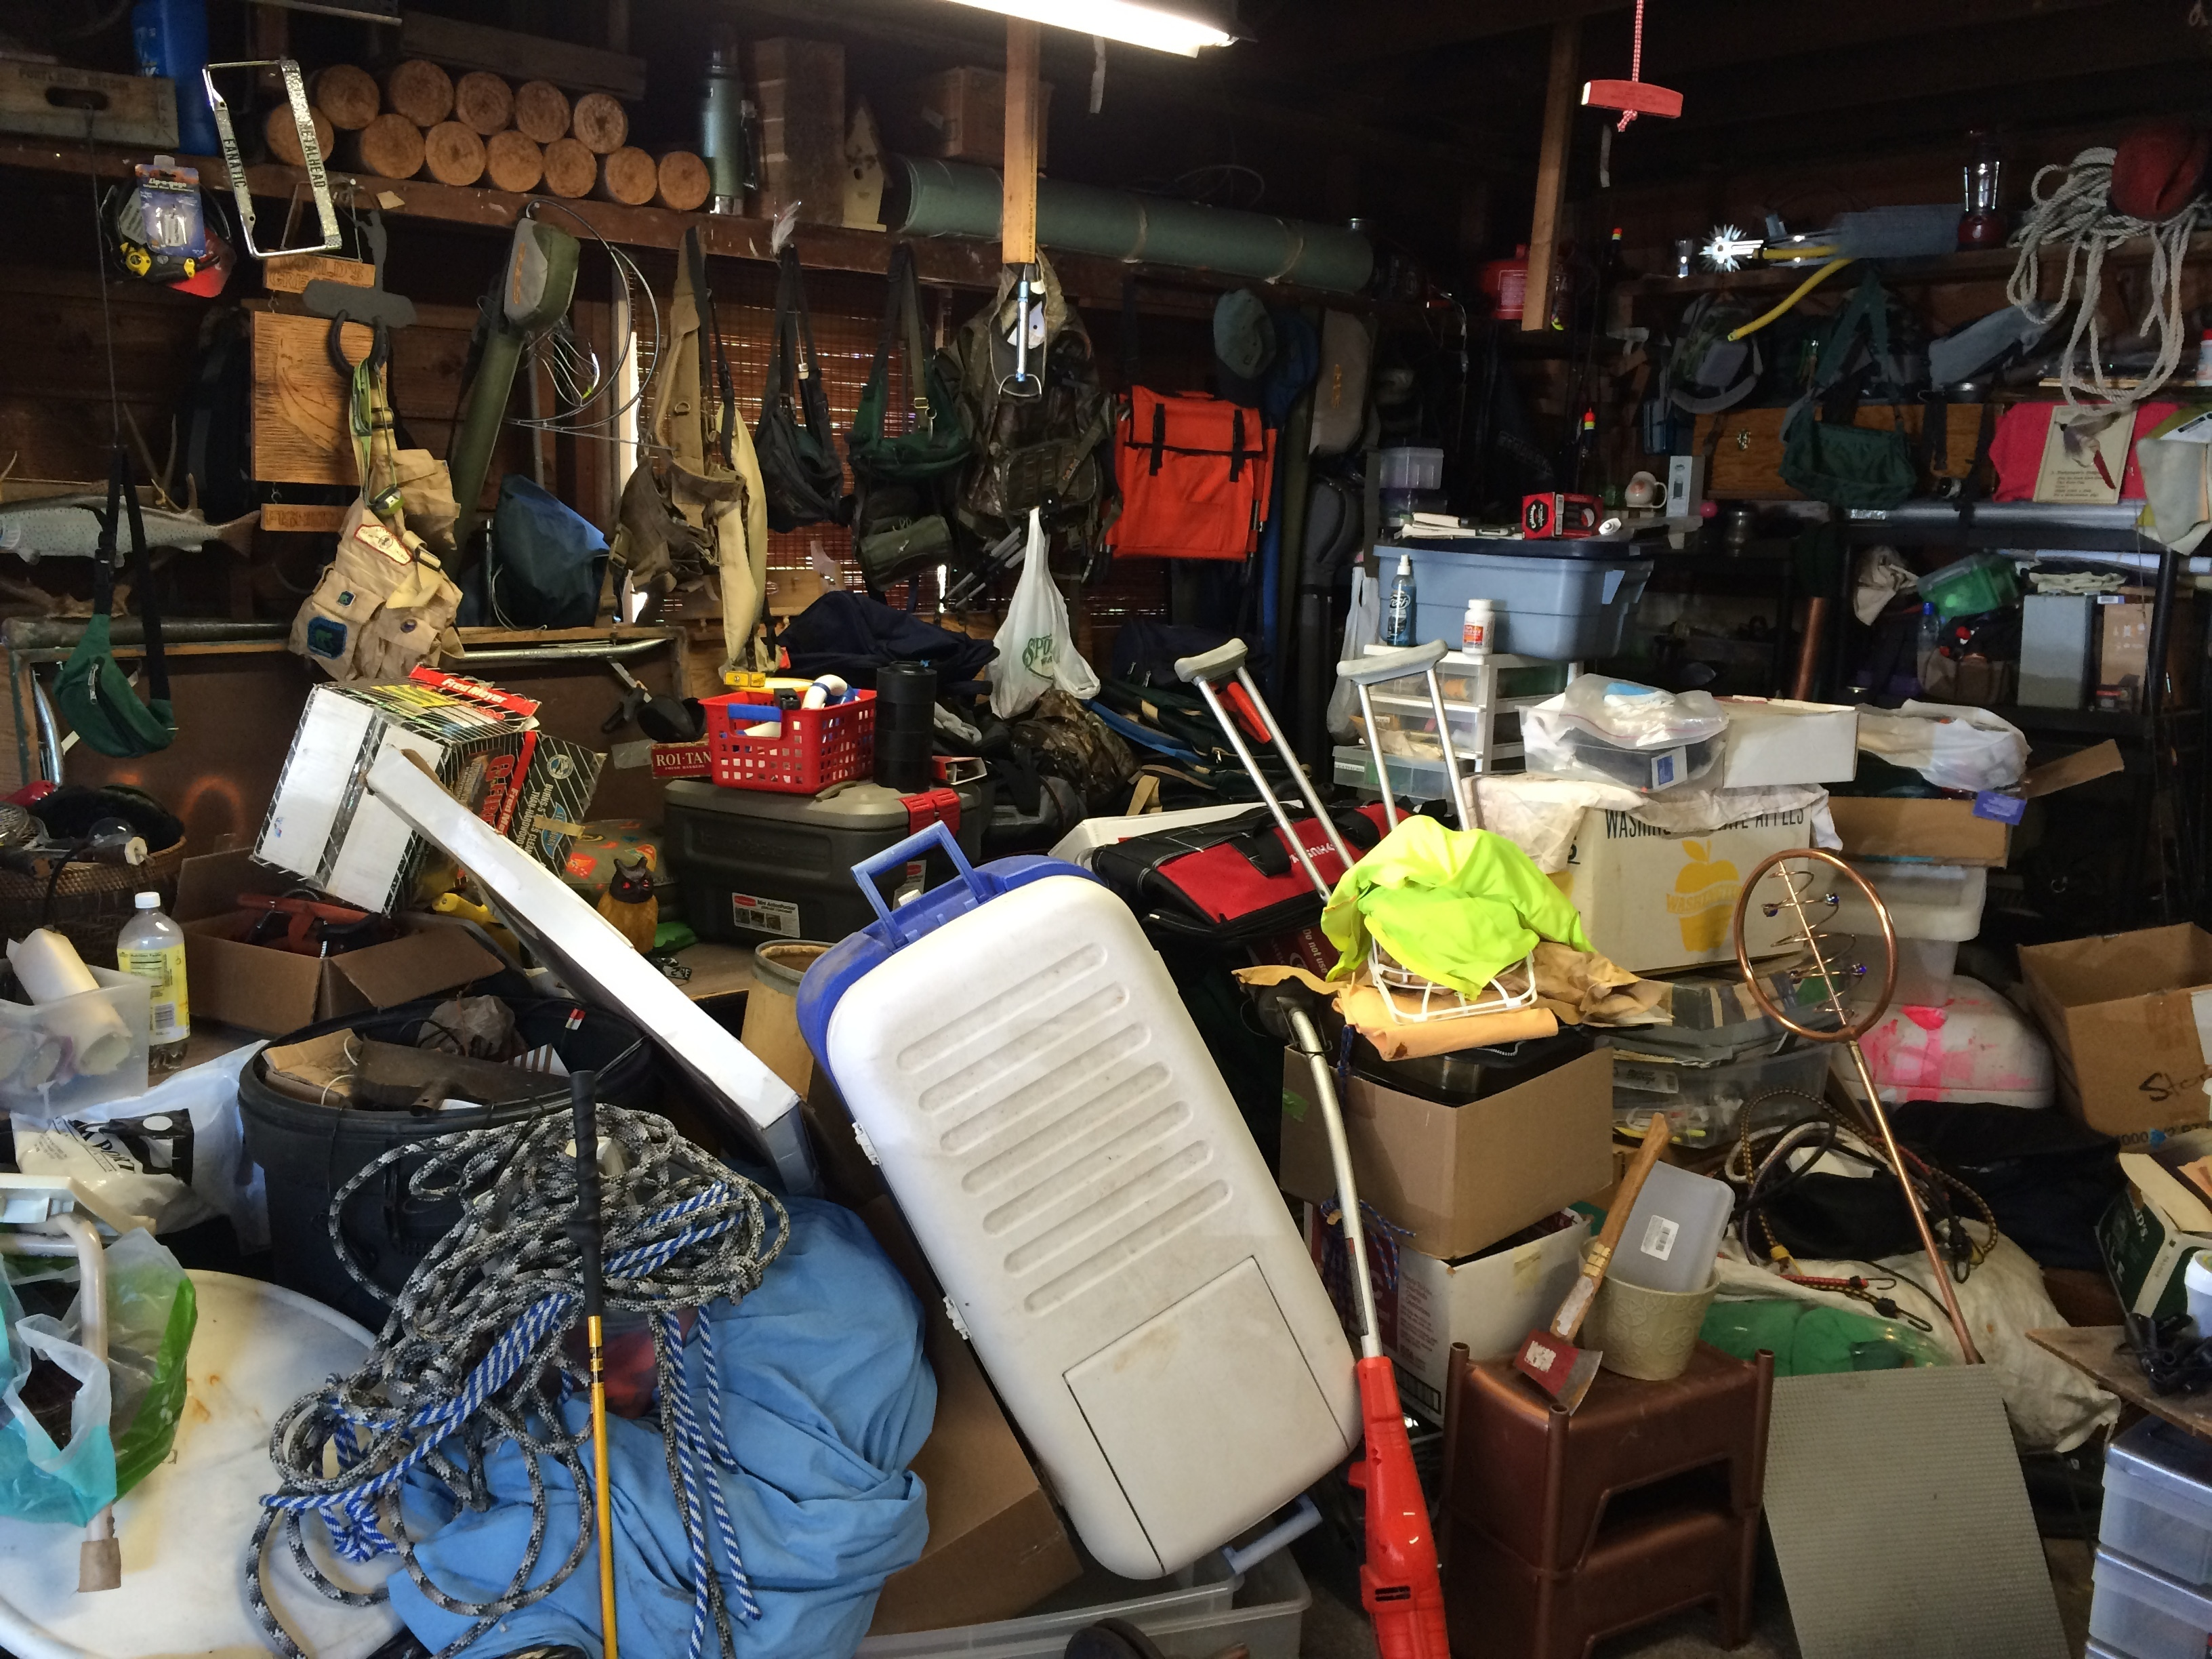 A garage filled with random items; bikes, toys, boxes, tools, etc